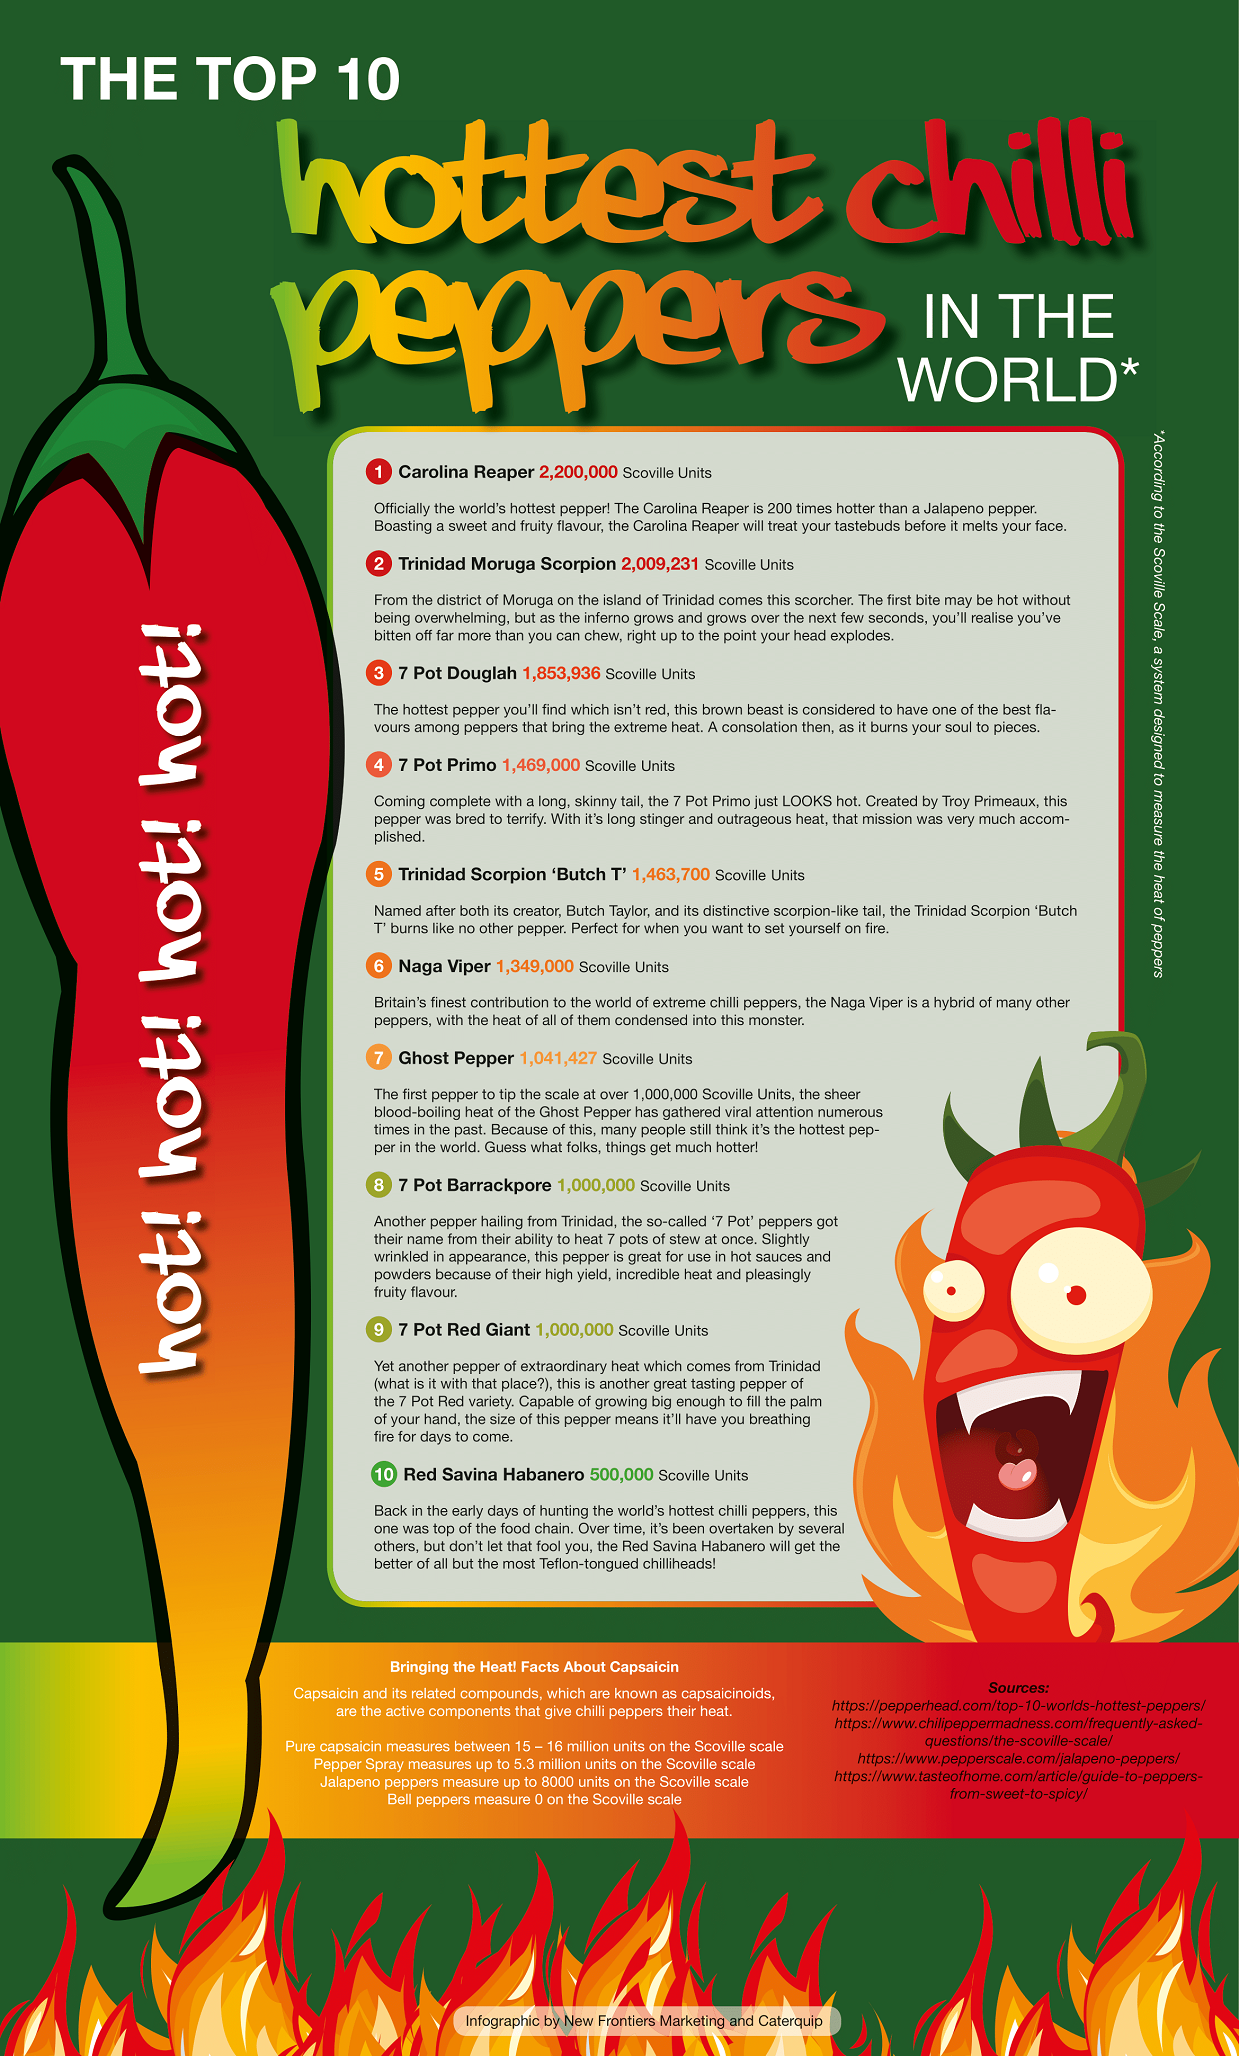 The Top 10 Hottest Chilli Peppers in the World #infographic